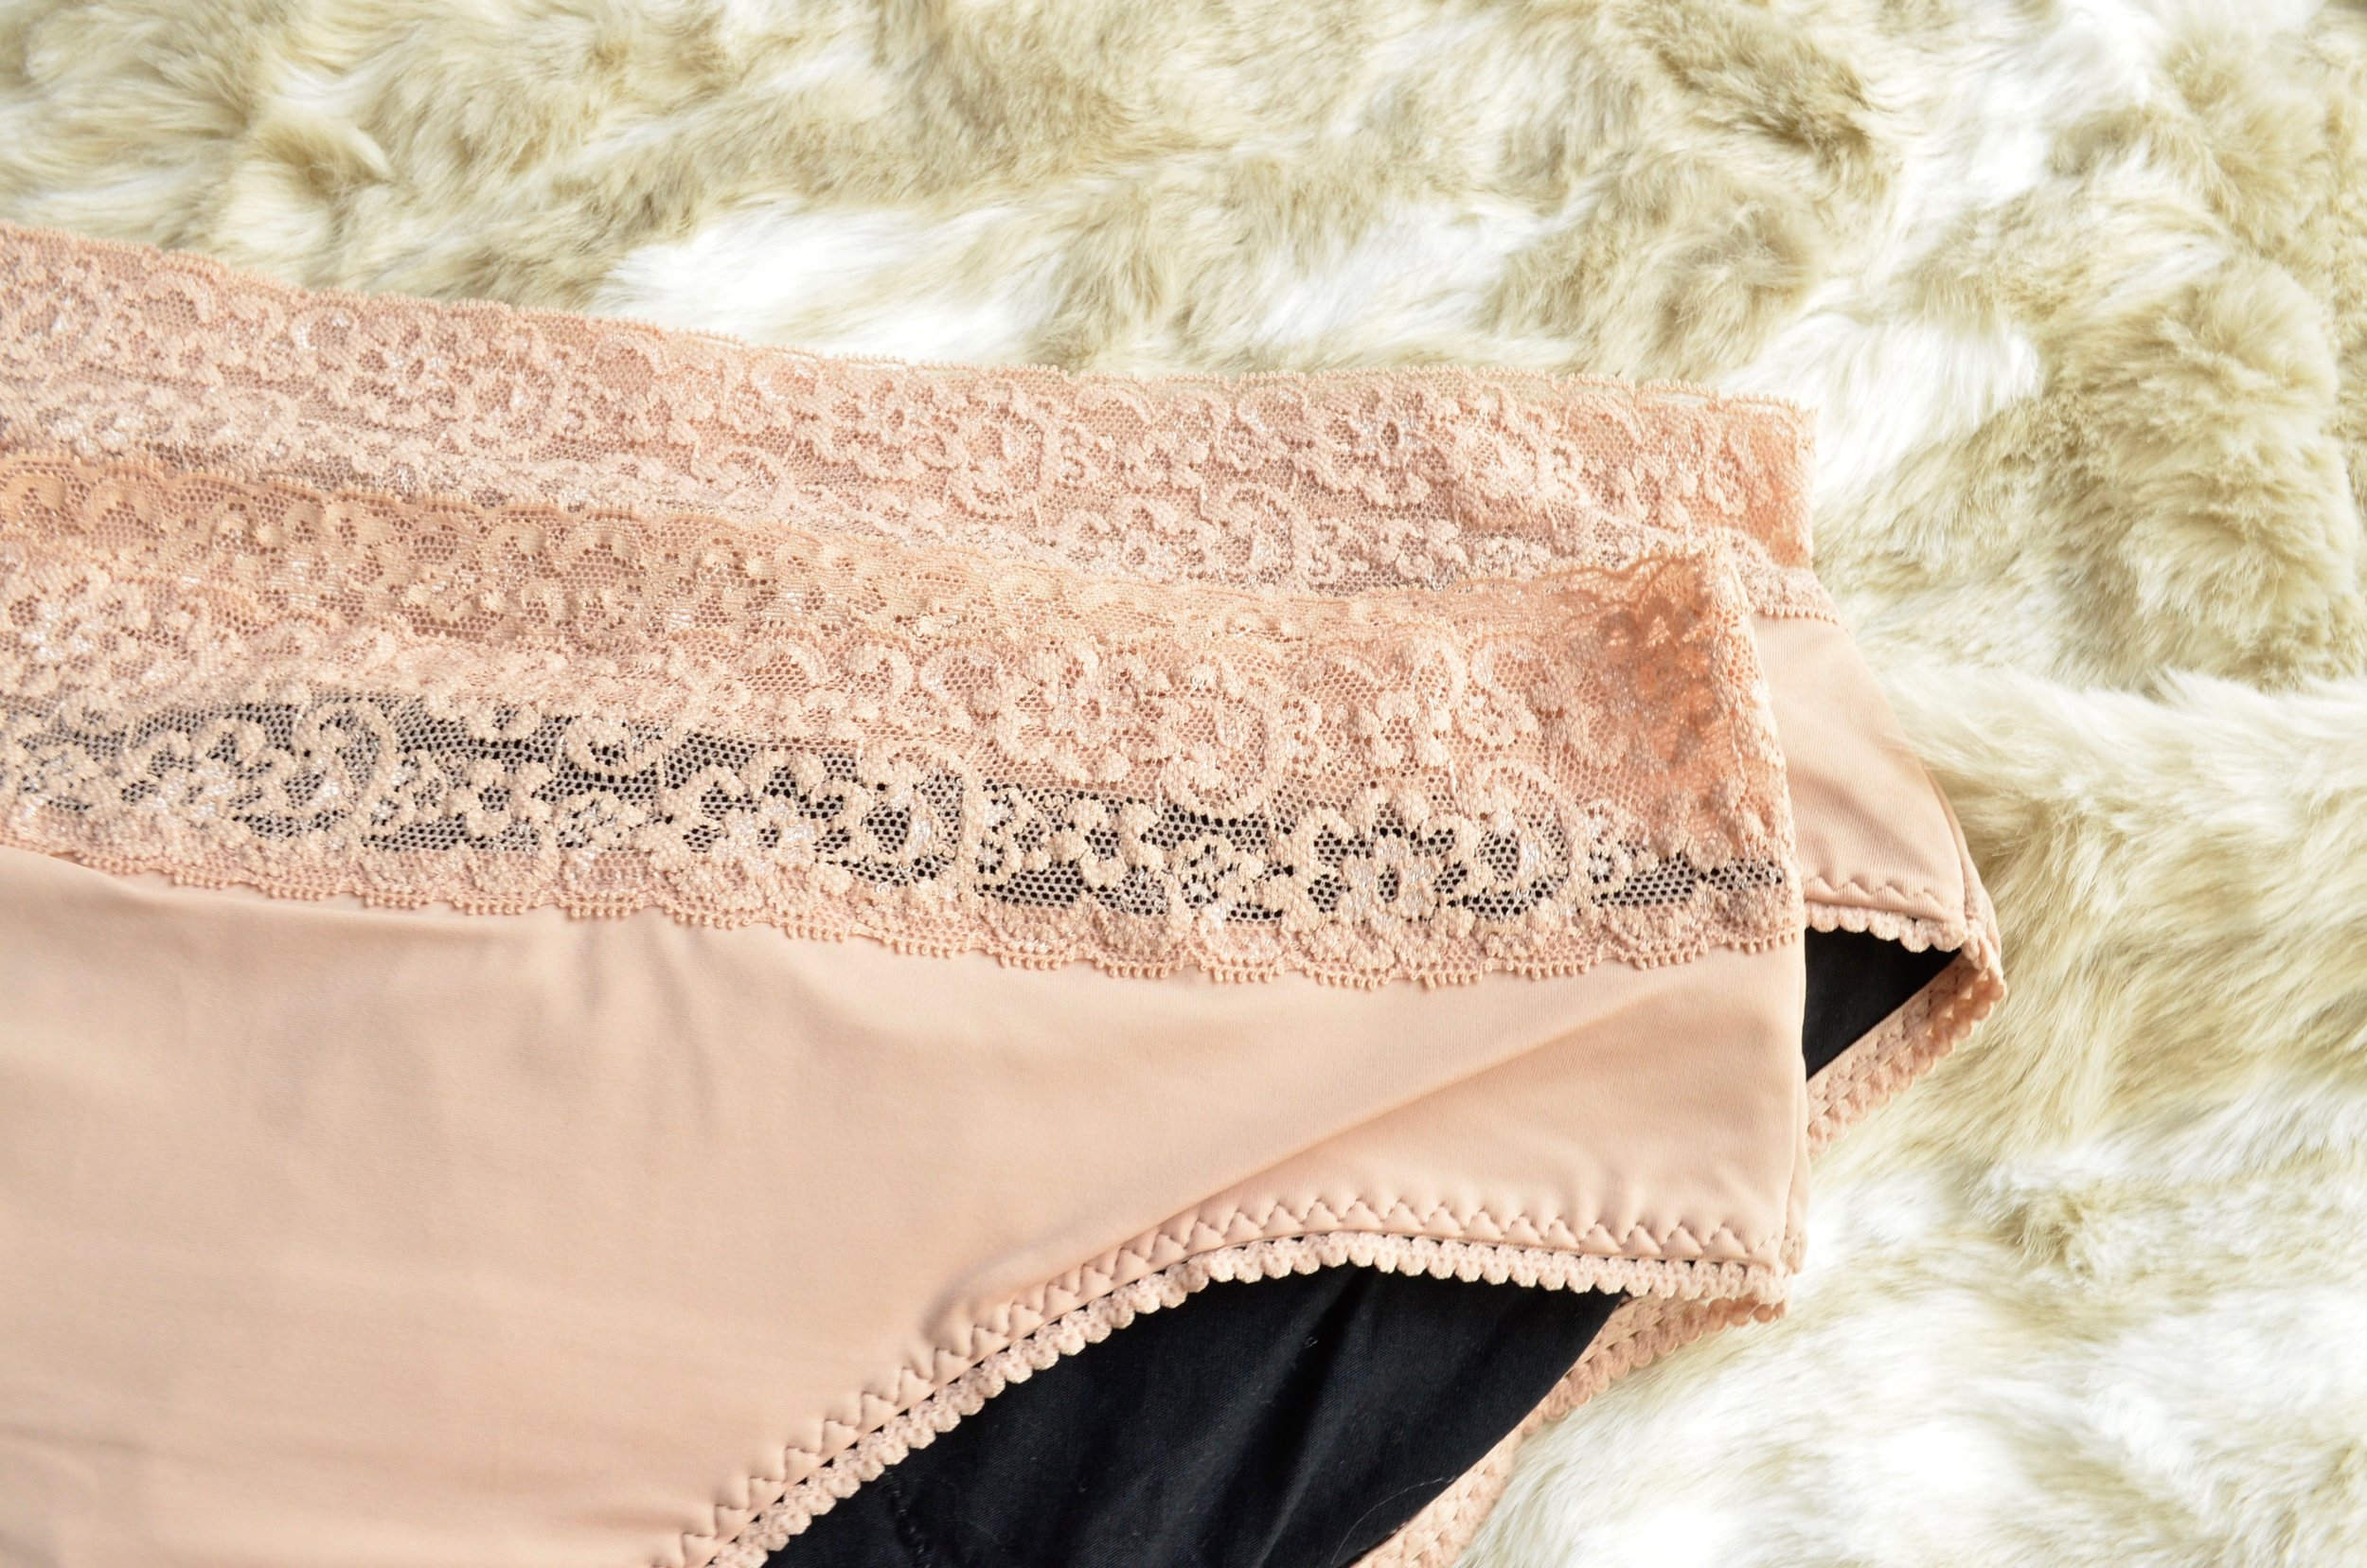 thinx-period-panty-review_dsc0129